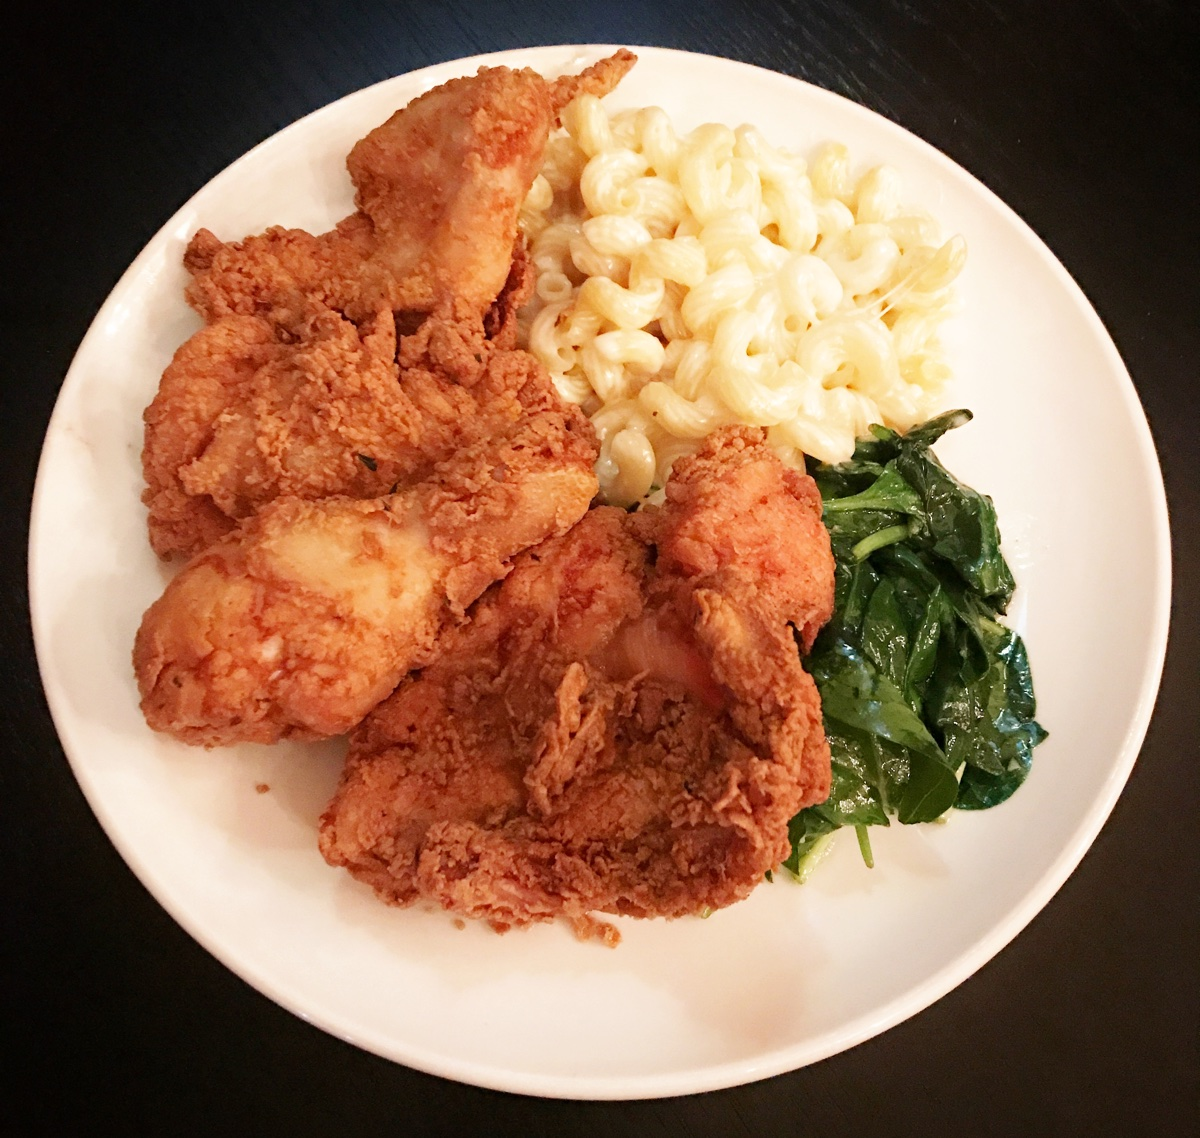 Fried Chicken is one of several late-night menu items now available at the Independent